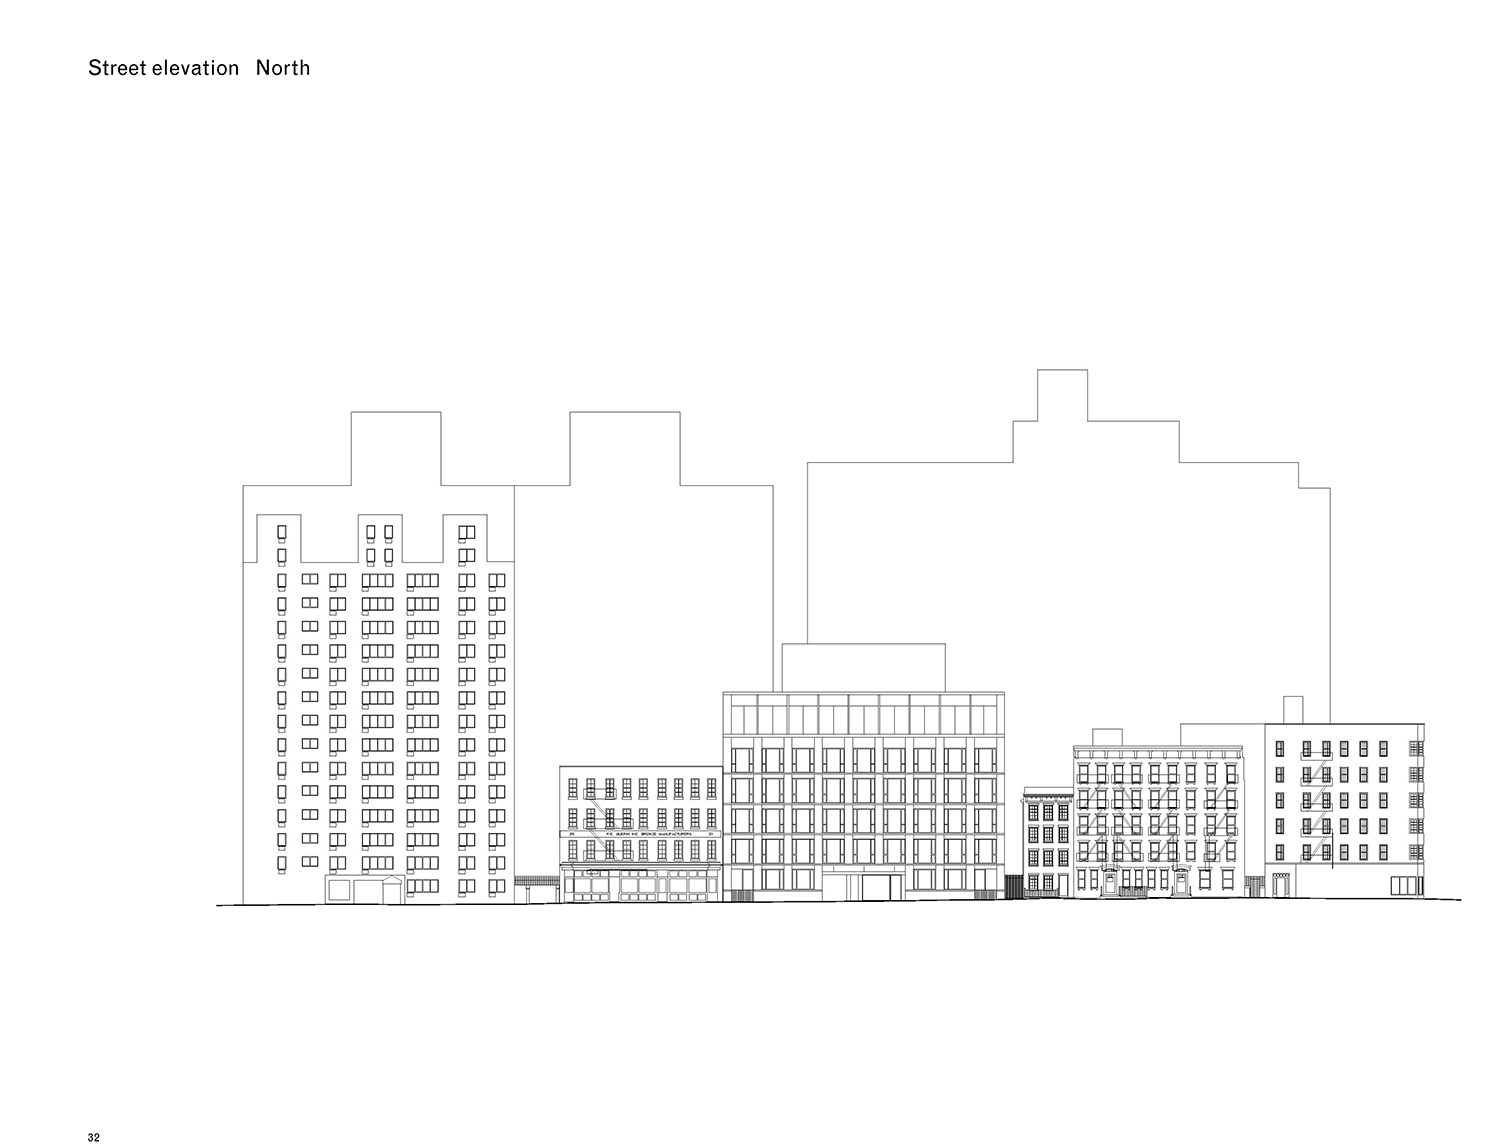 Plan cellule dynamis sur defender - New York Yimby Has Published Chipperfield S Entire Presentation